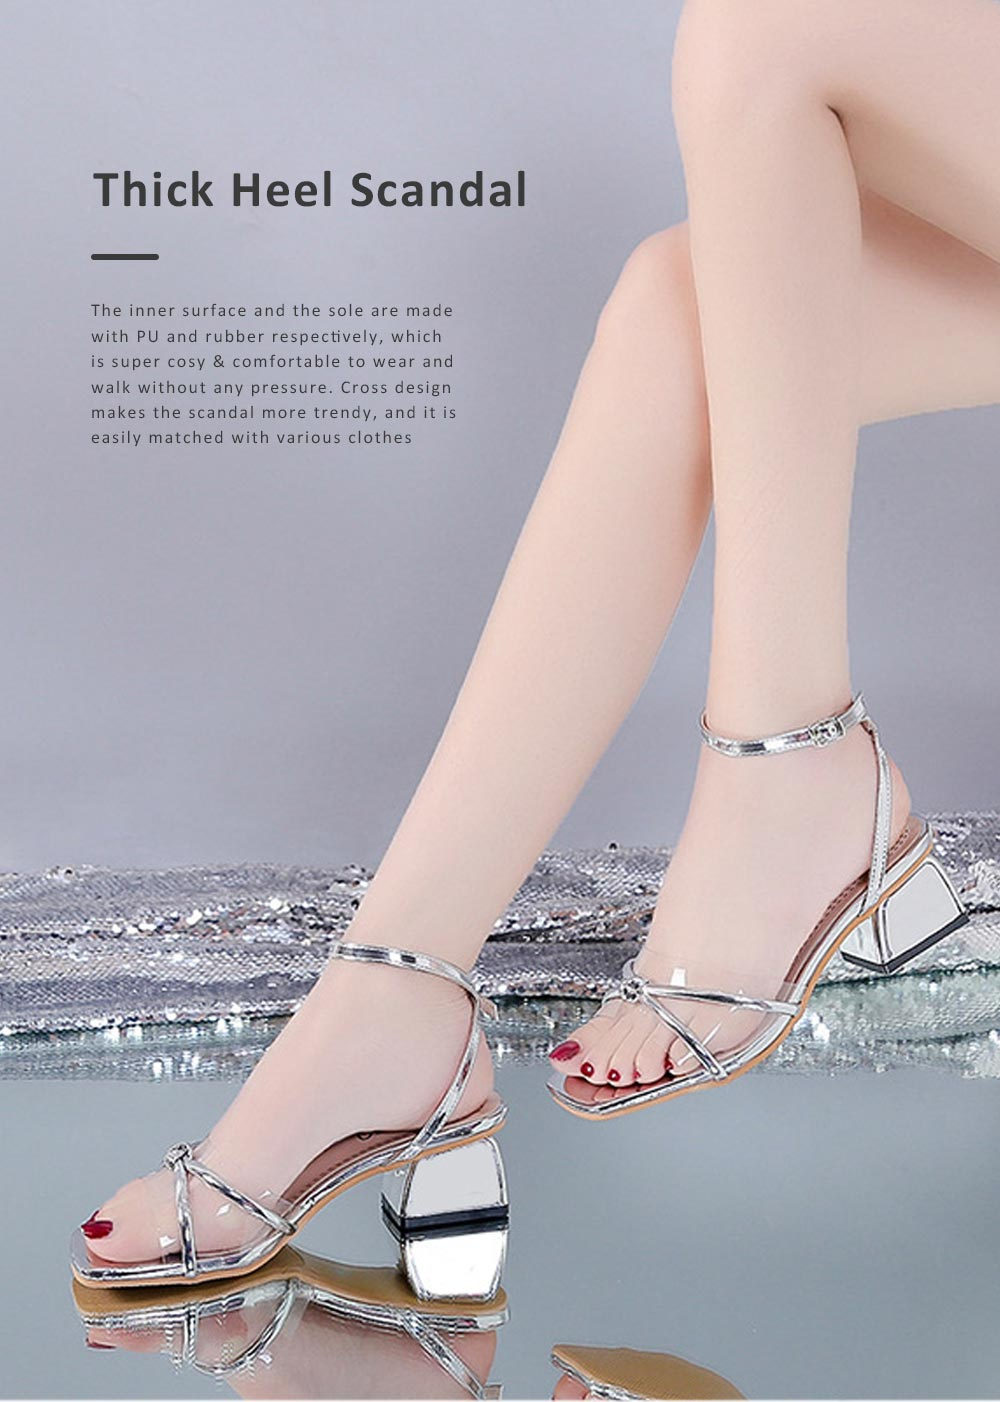 Medium-Height Thick Heel Scandal Transparent Fashion Cross Design PU Rubber Open Toe Shoe with Square Head For Women 0